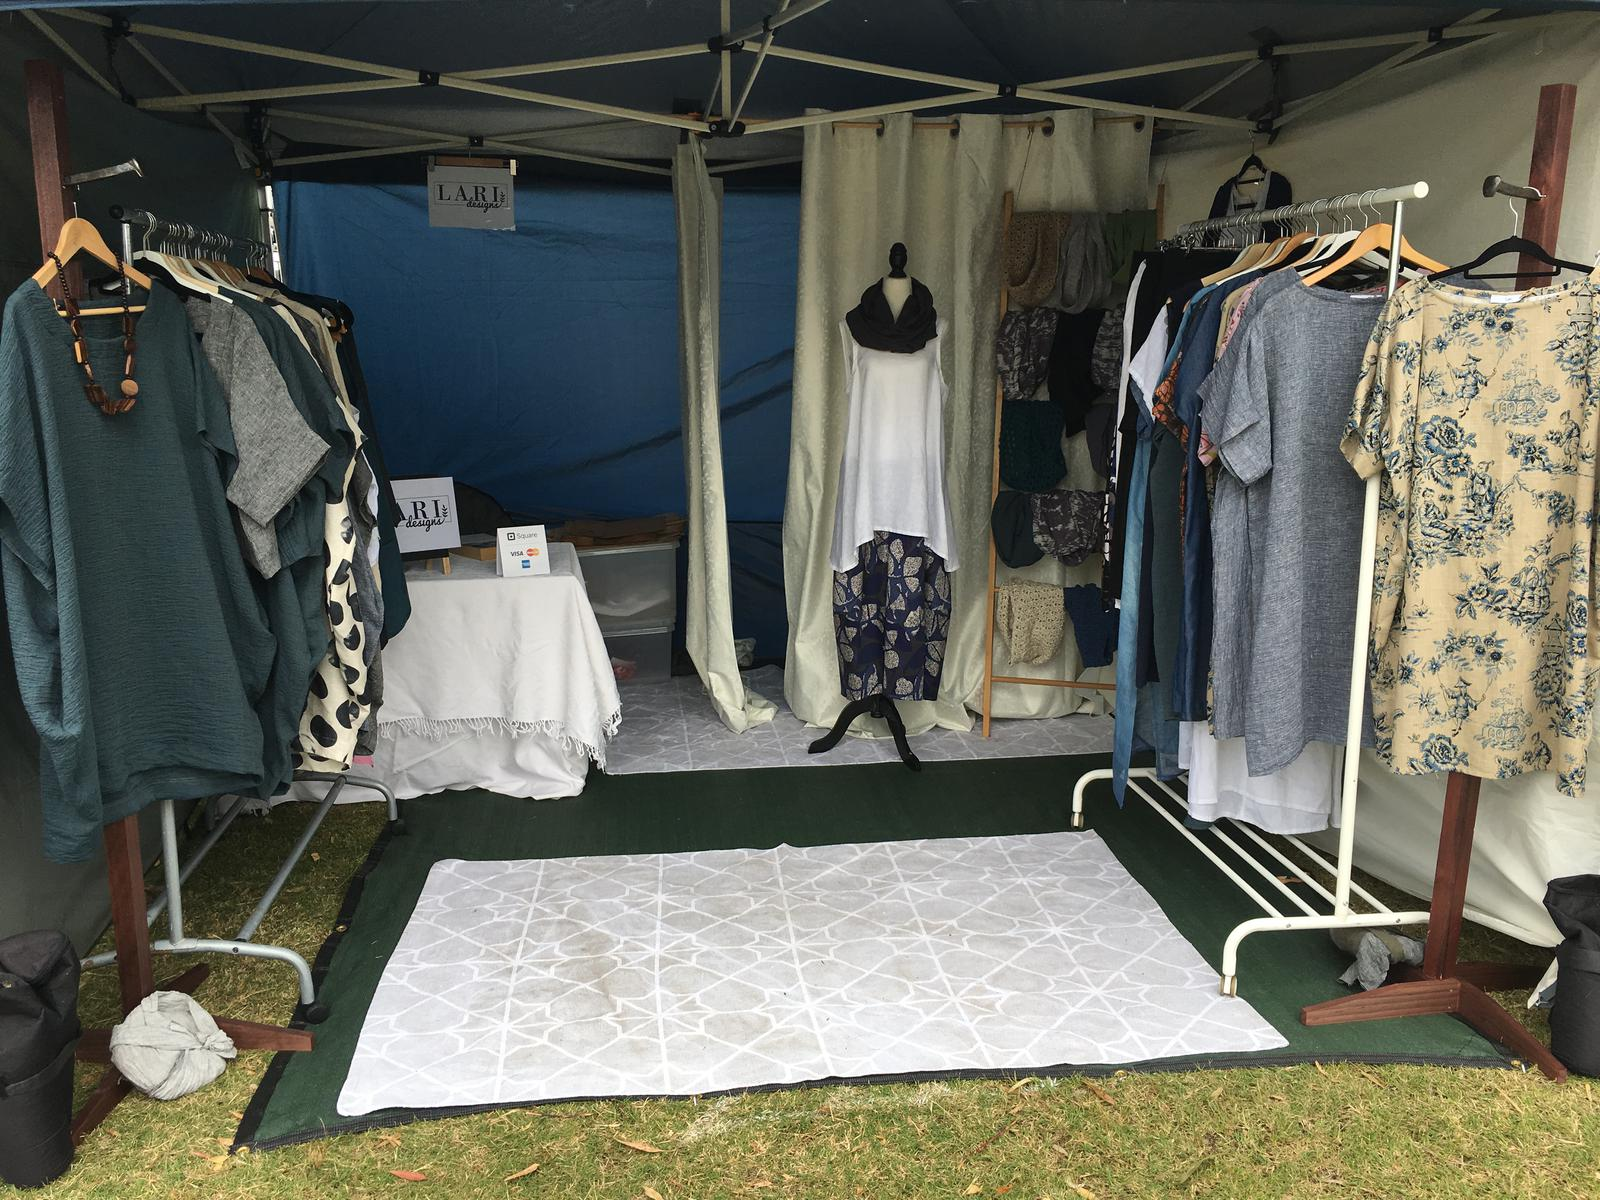 Stall set up